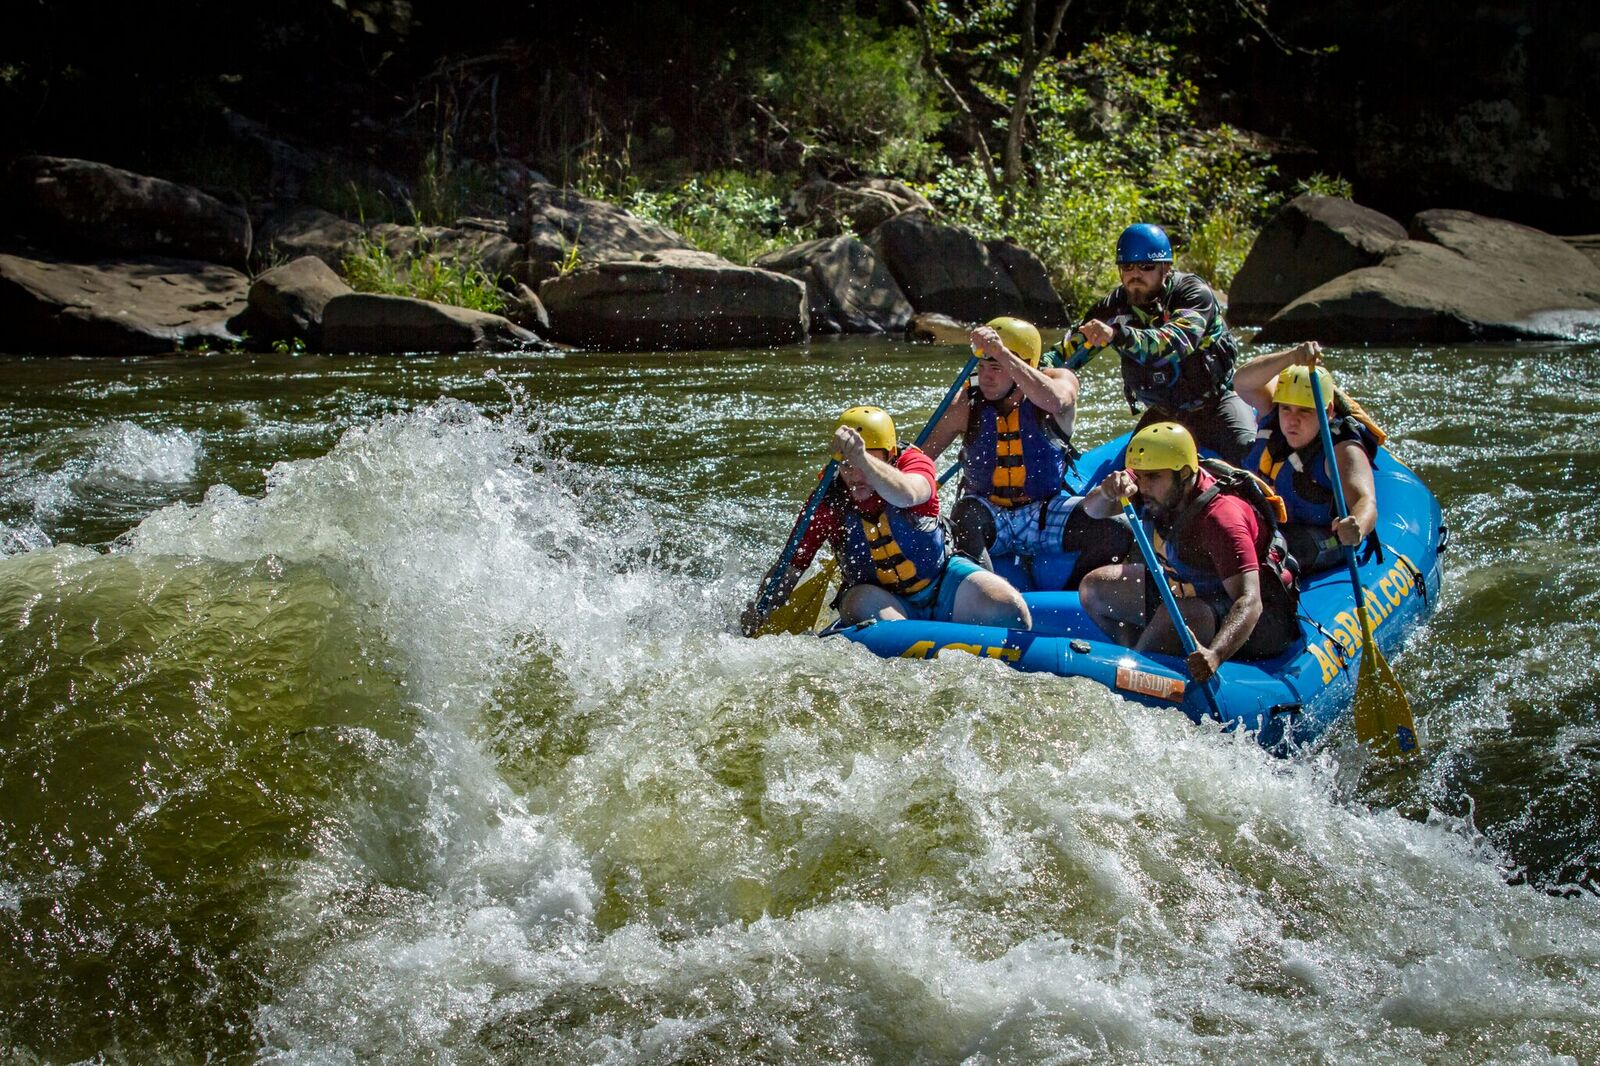 A group of 5 paddling into the rapids